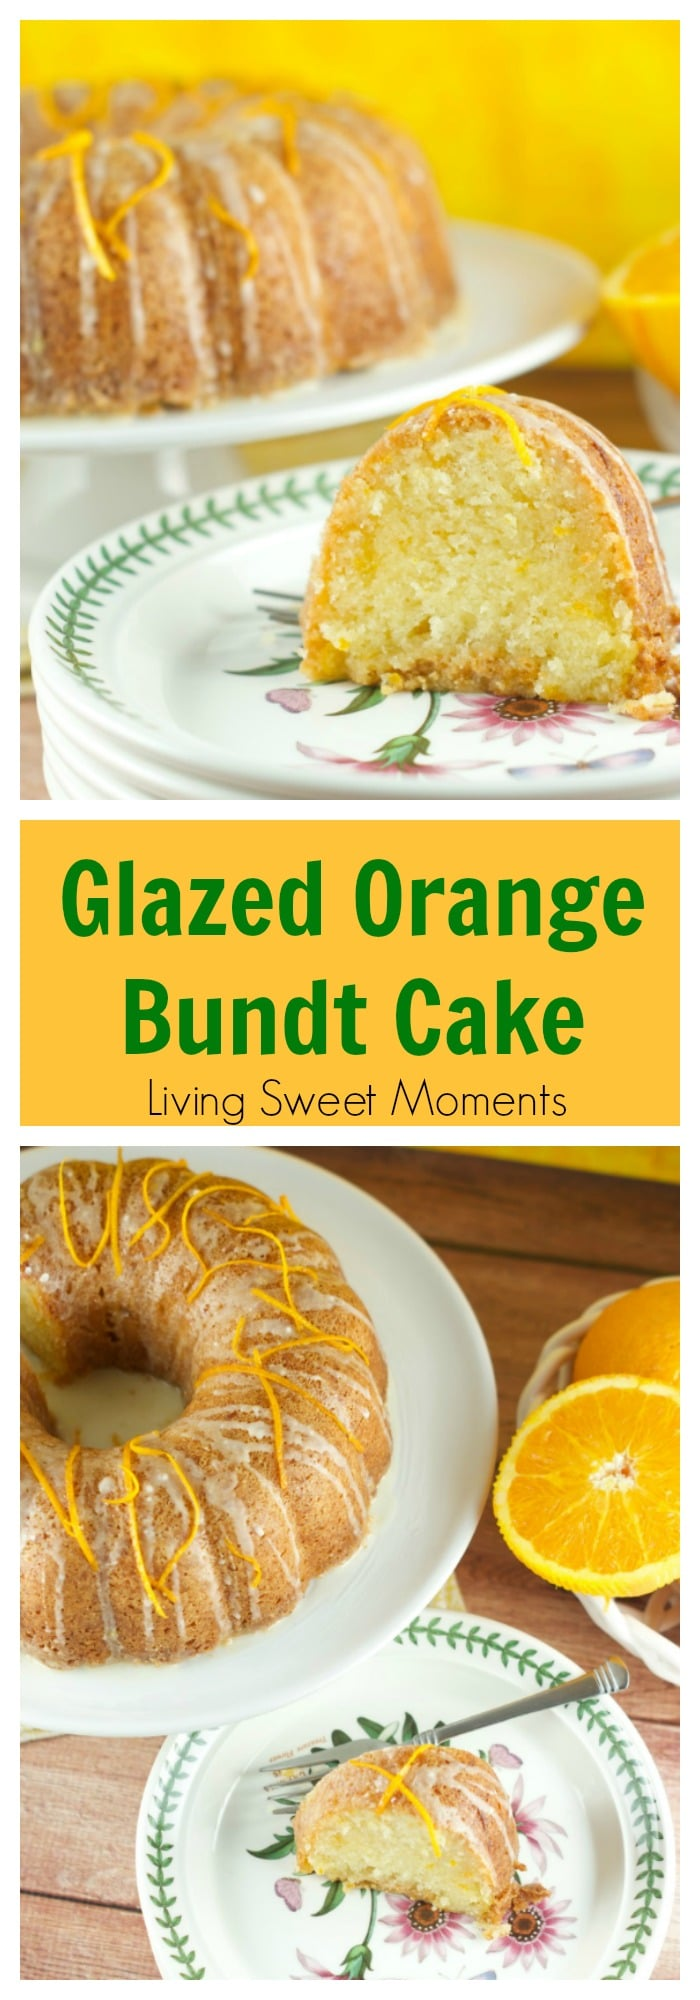 Glazed Orange Bundt Cake Recipe: delicious orange soaked bundt cake topped with a sweet orange glaze. The perfect dessert or breakfast for any occasion.